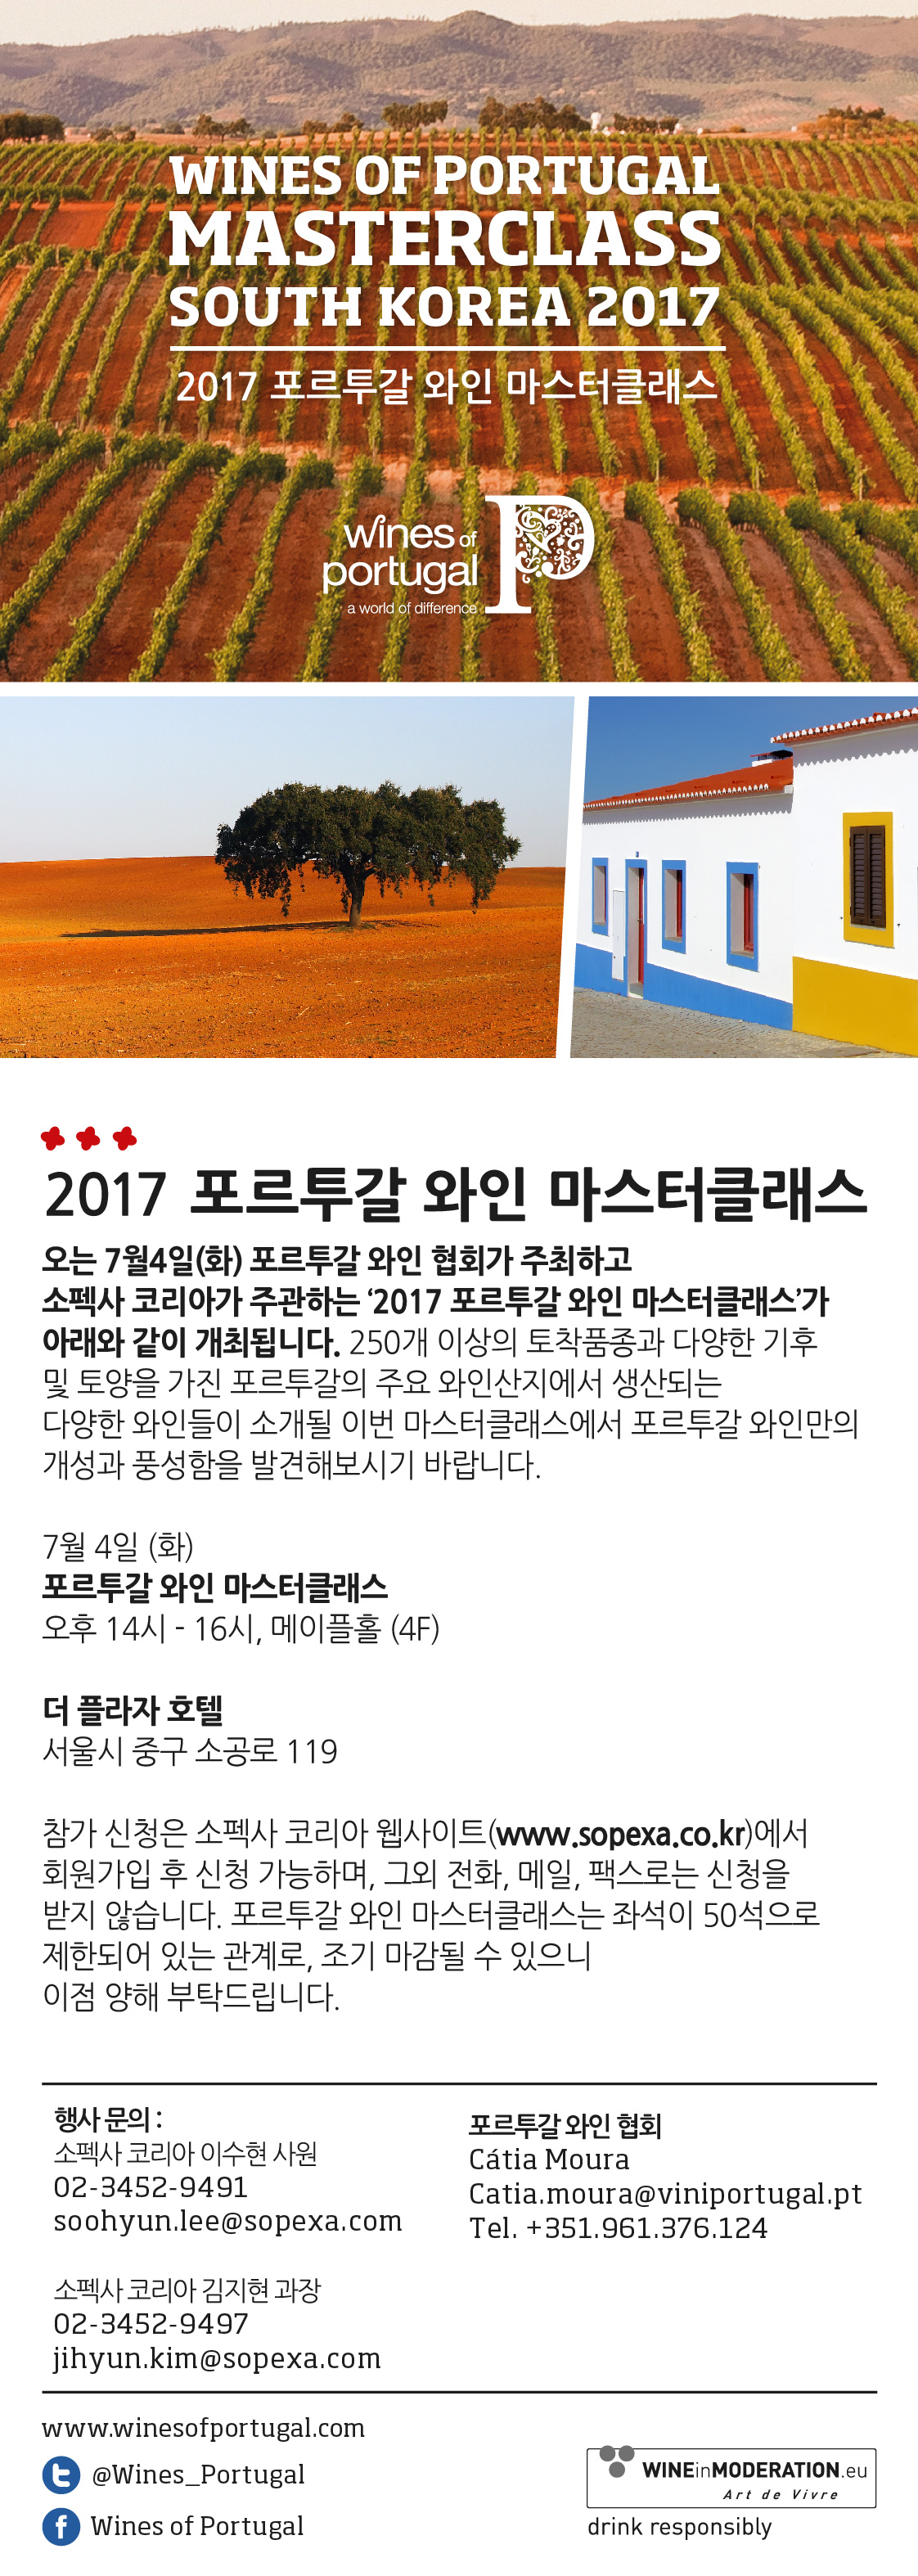 INVITATION_1122x3148_KR.jpg